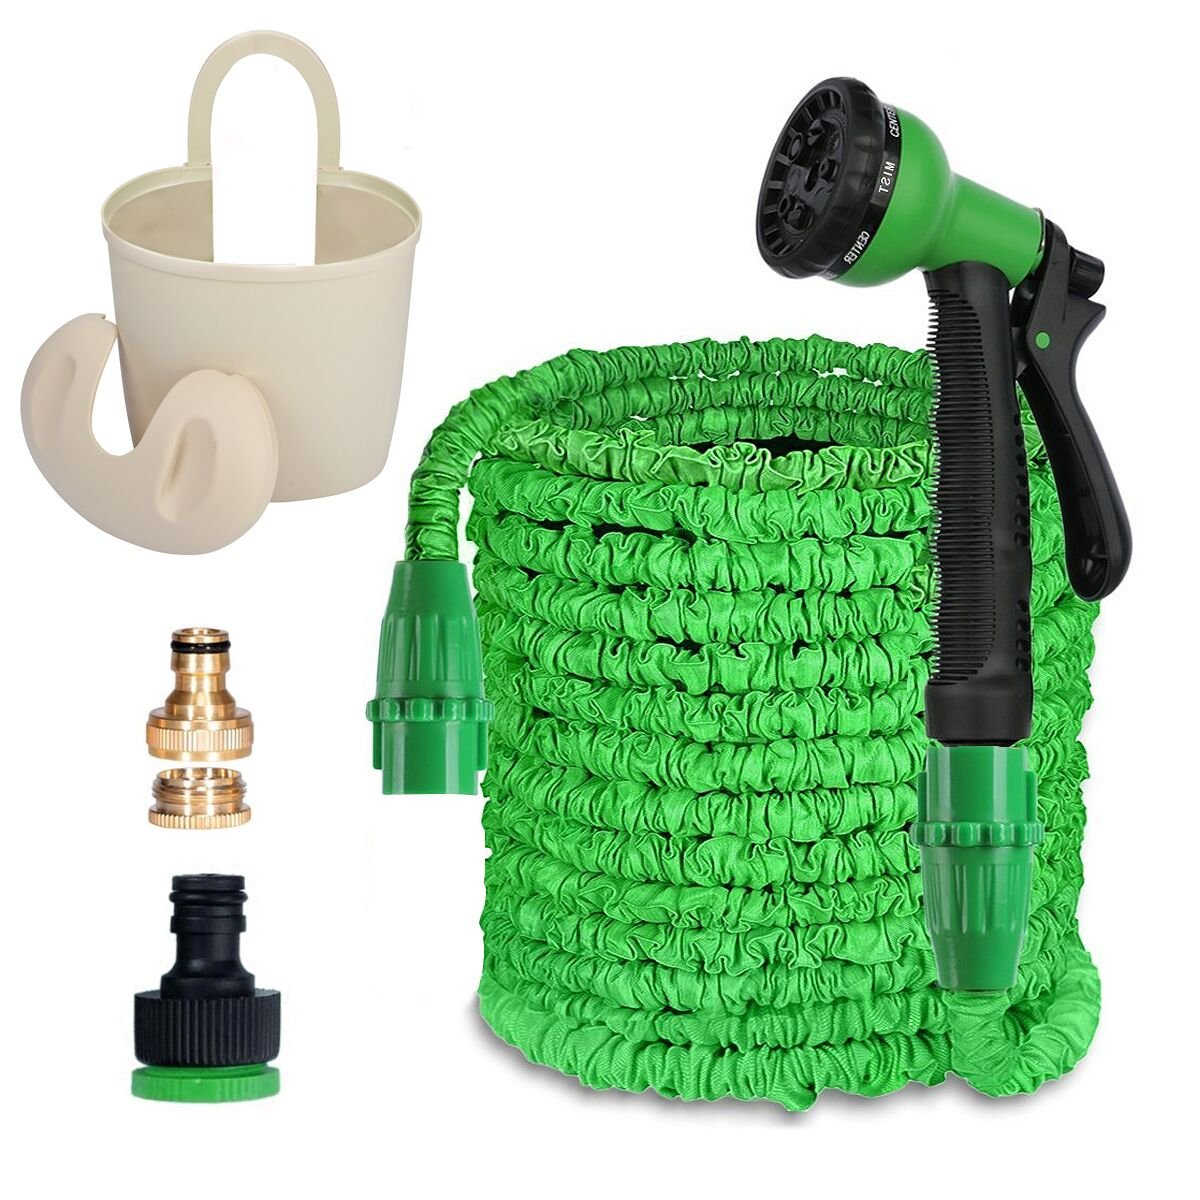 MEIDOO 100FT Expandable Garden Hose Pipe with Solid Brass Hose Fitting & Plastic Bucket, 8 Function Spray Gun for Watering Plants, Cleaning Windows and Washing Cars SHUIGUAN9